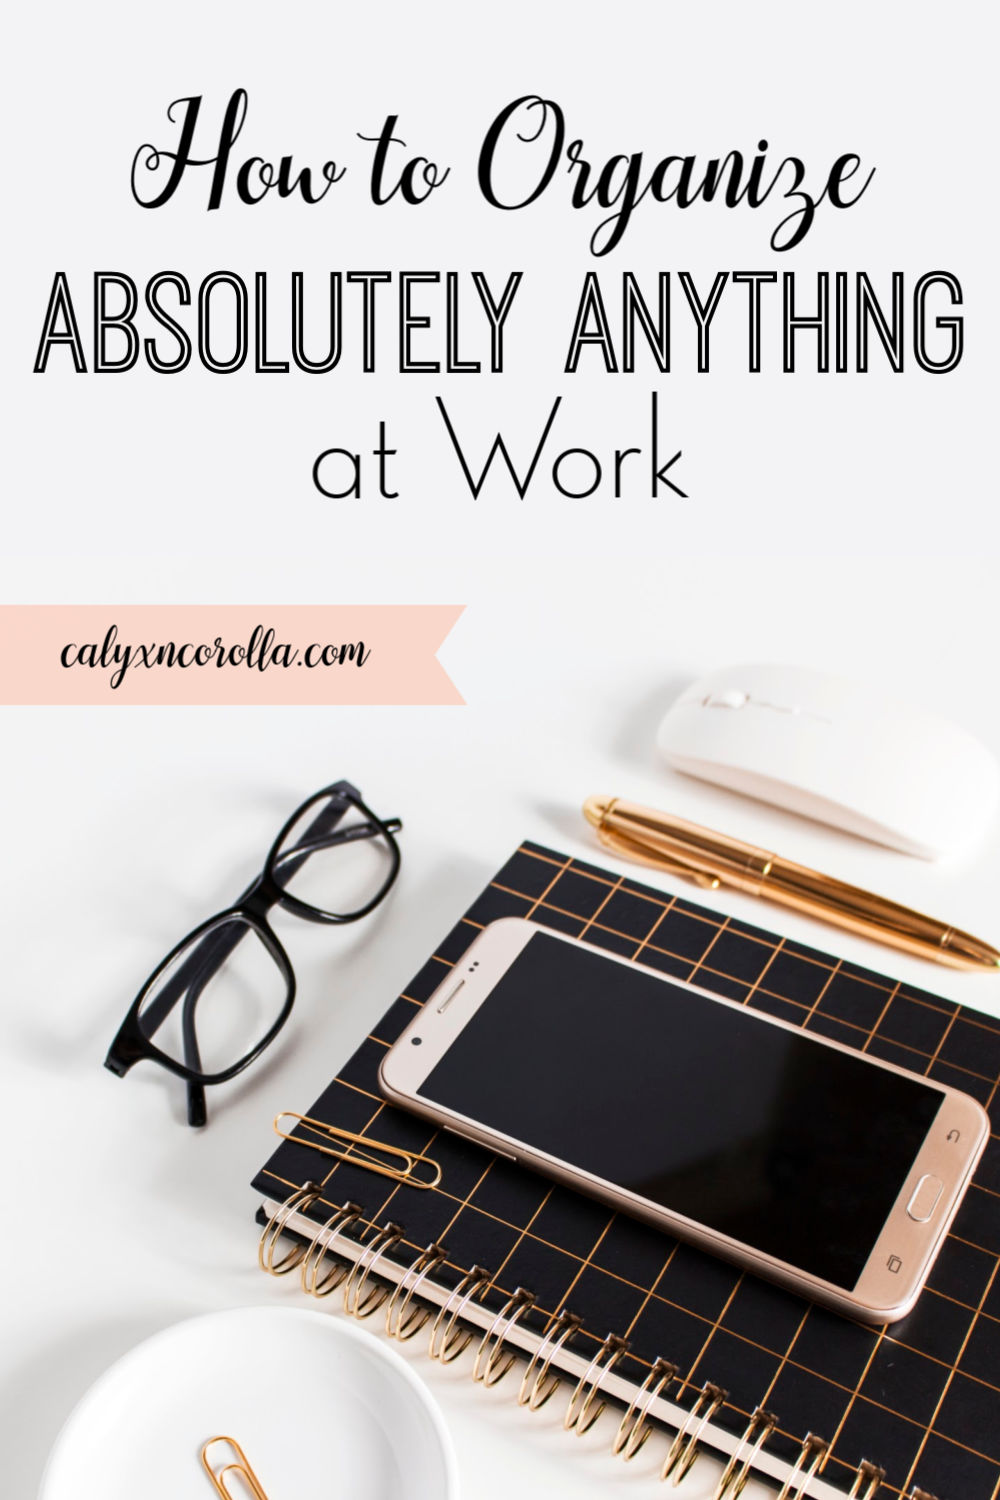 How to Organize Absolutely Anything at Work